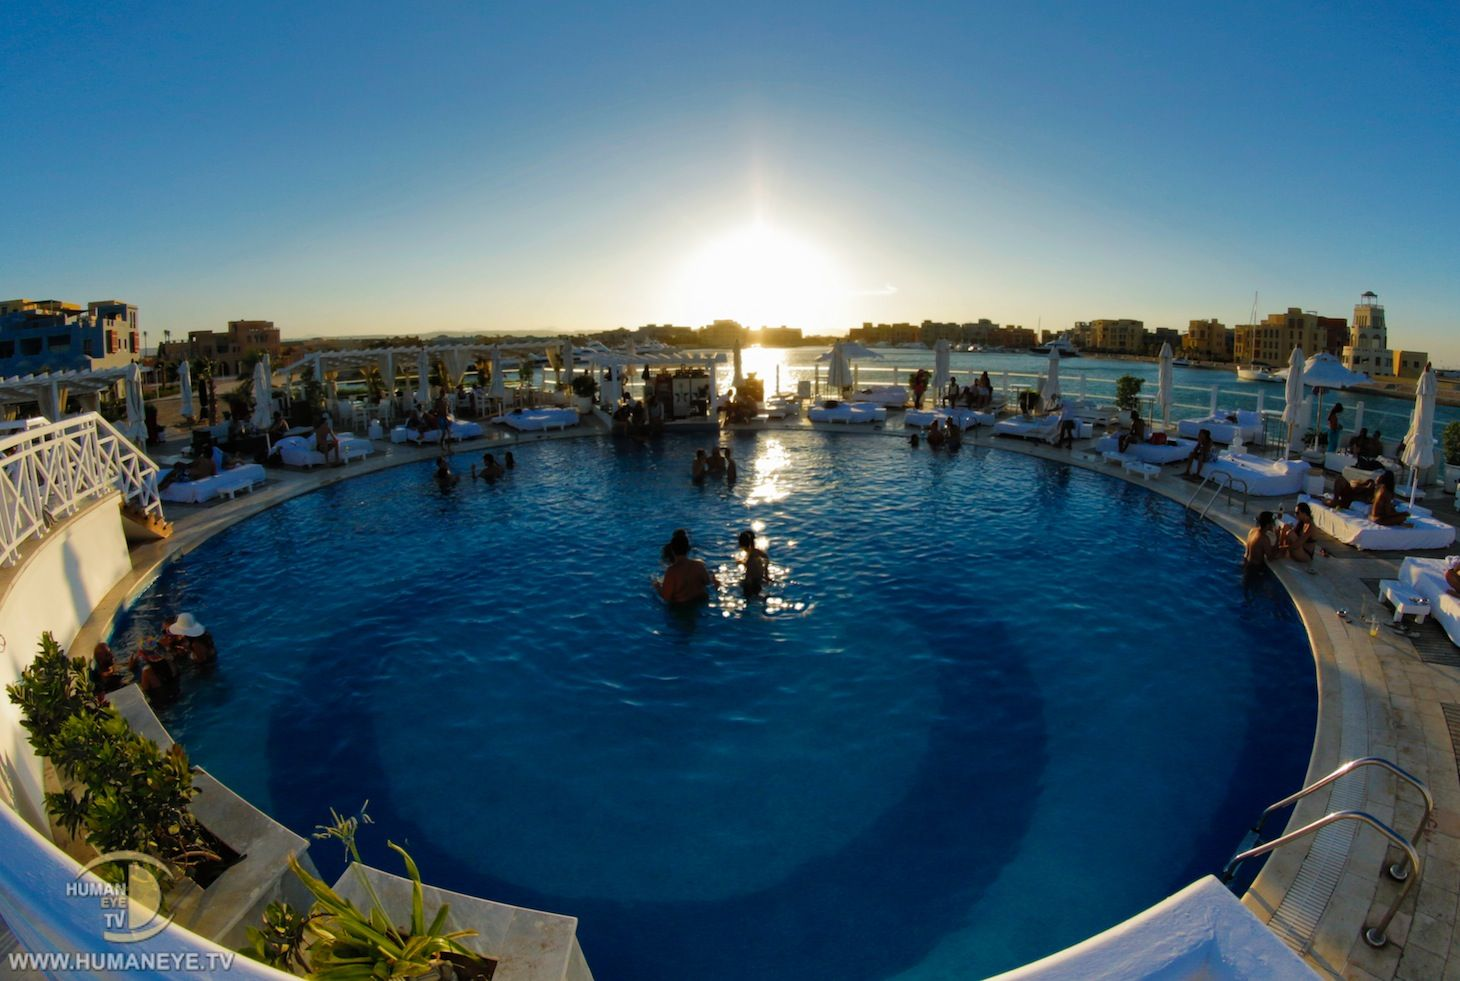 A Day & A Sunset To Remember... Every Day Is #Party Time At #Club88 #ElGouna #Redsea #Egypt...  https://www.facebook.com/club88.elgouna.redsea https://twitter.com/Club88ElGouna http://instagram.com/club88elgouna/ http://www.pinterest.com/club88elgouna/pool-area/ https://plus.google.com/u/0/b/108084223059345076071/108084223059345076071/posts Social Media Managed By www.humaneye.tv Team